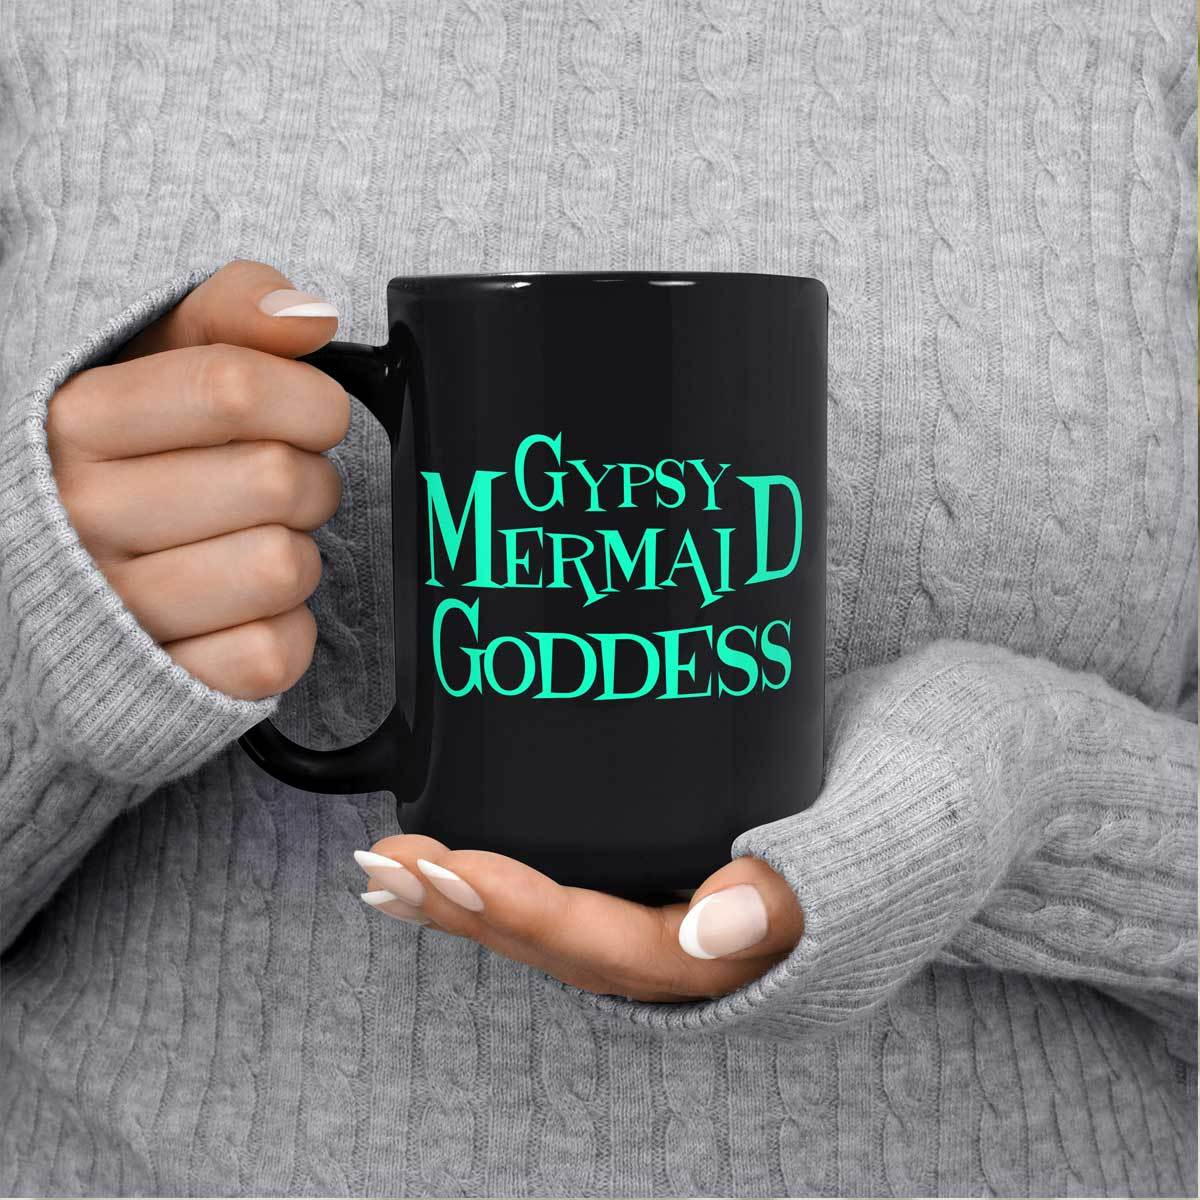 Gypsy Mermaid Goddess Black Mug Mermaid Drinkware